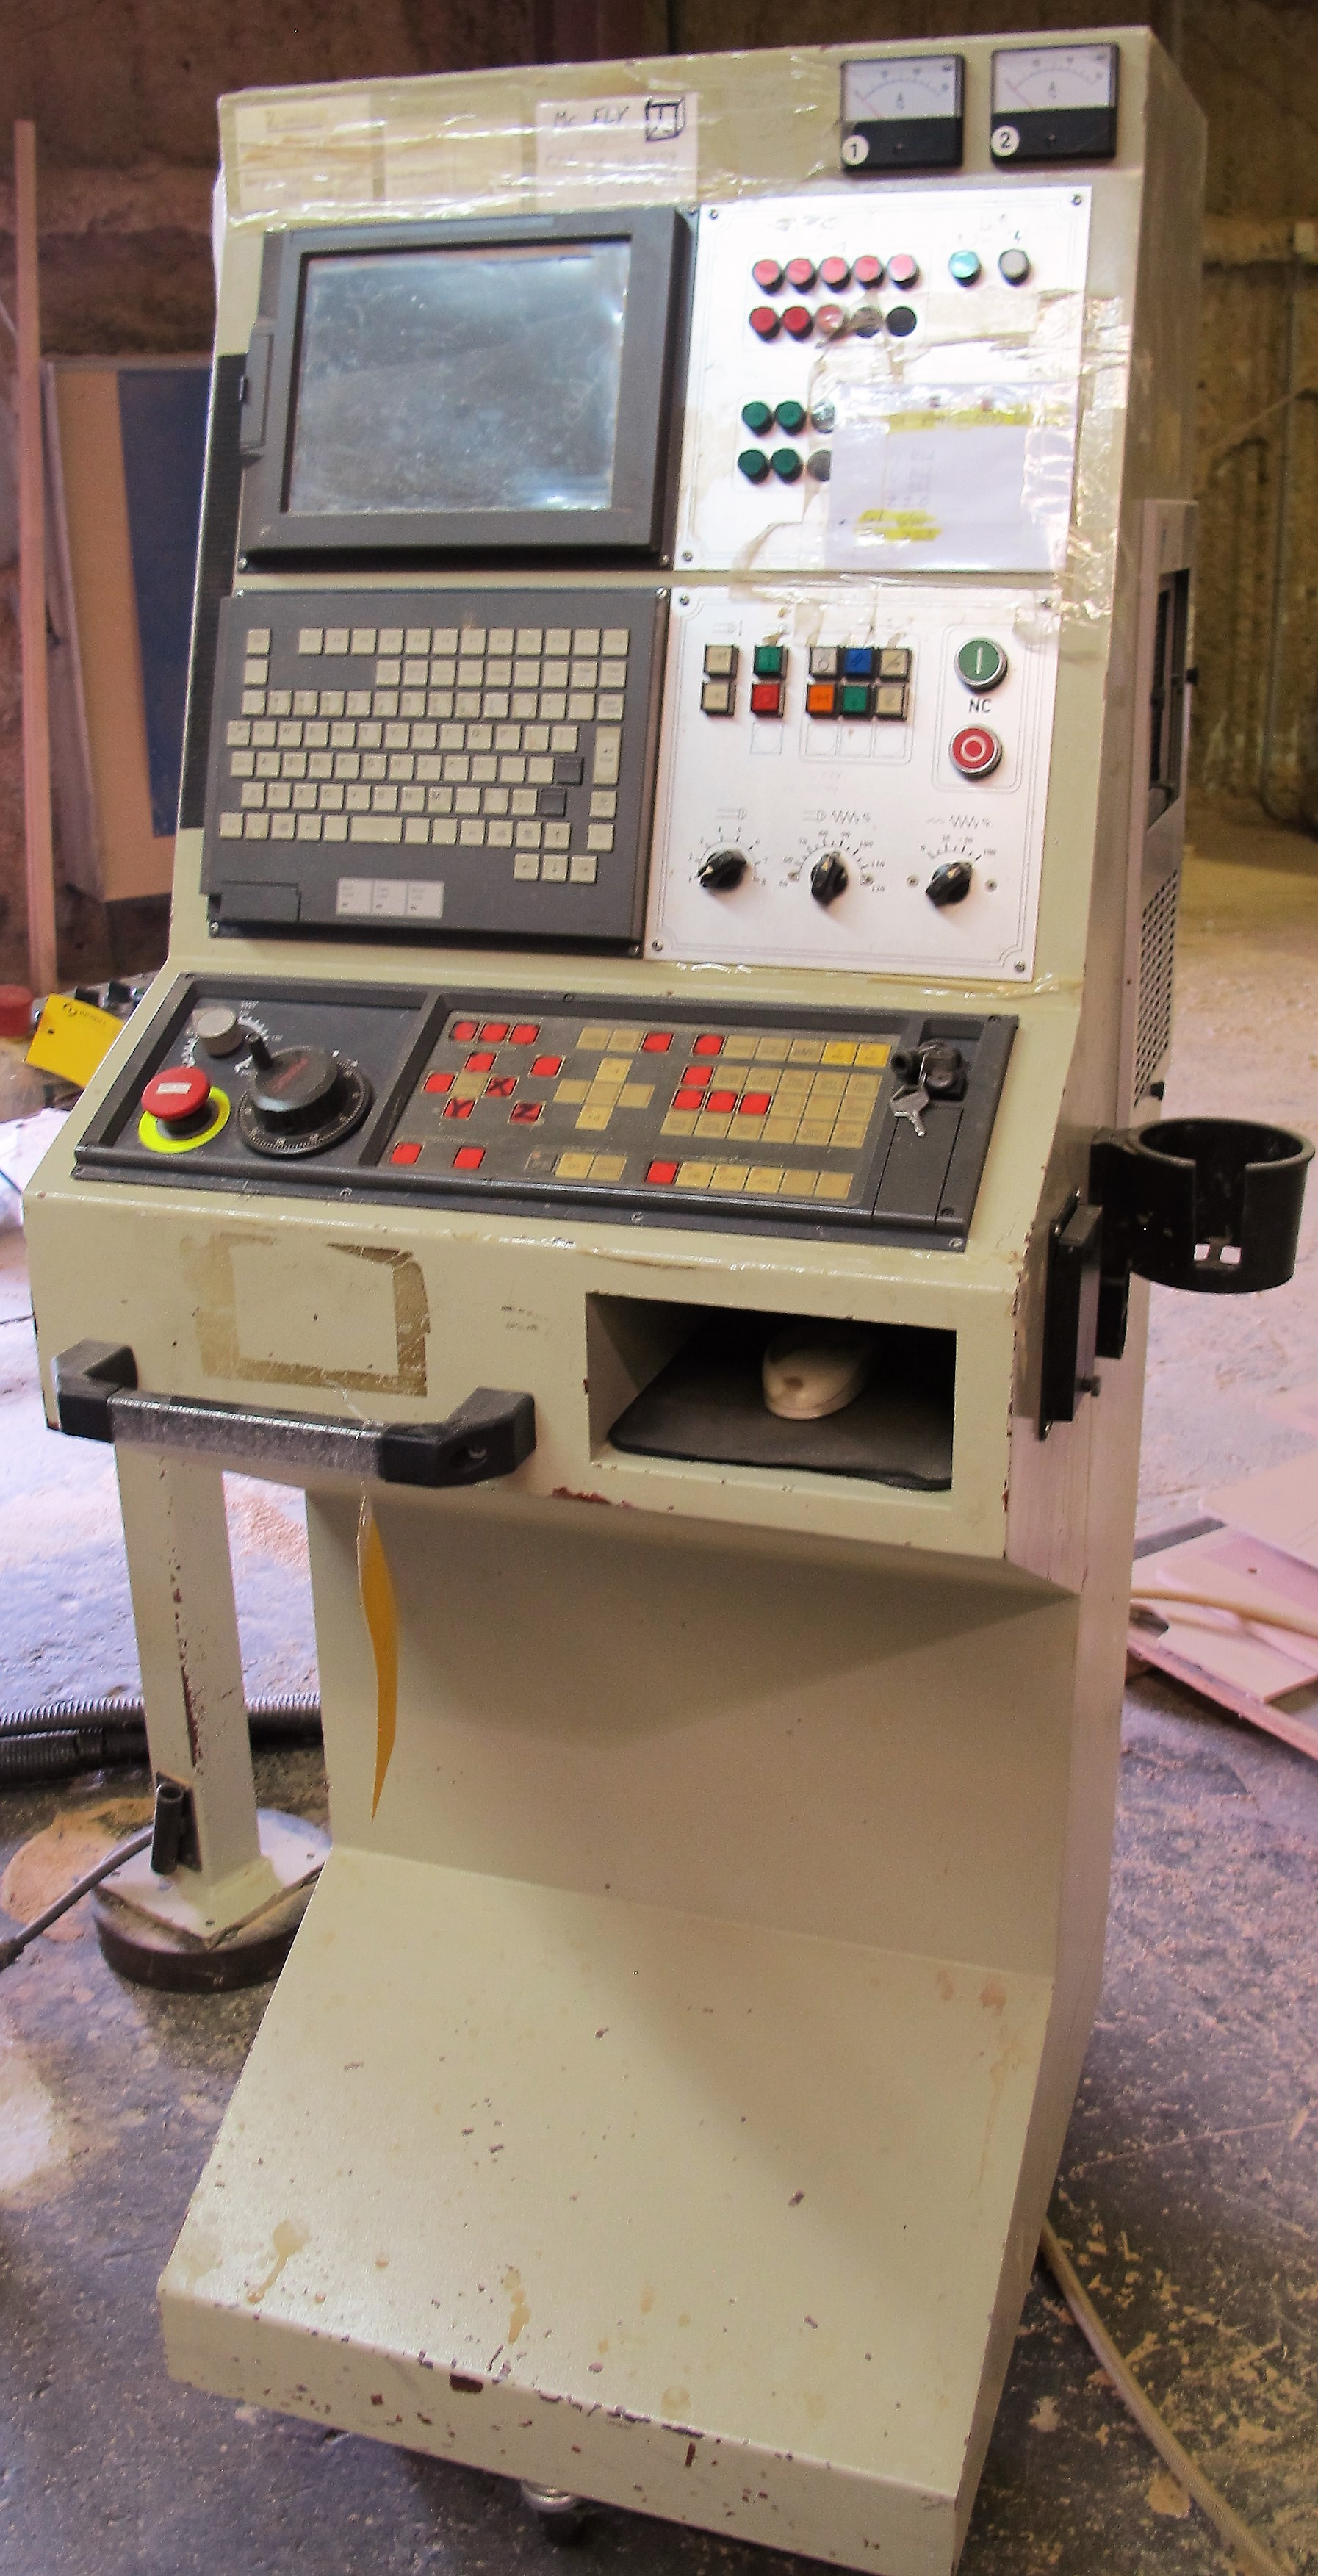 """Lot 11 - 2000 ANDERSON NC-3116TC CNC ROUTER, S/N 01-89113, 63"""" X 122"""" TABLE, (2) HEAD EACH W/ 16 ATC, TOOLING"""